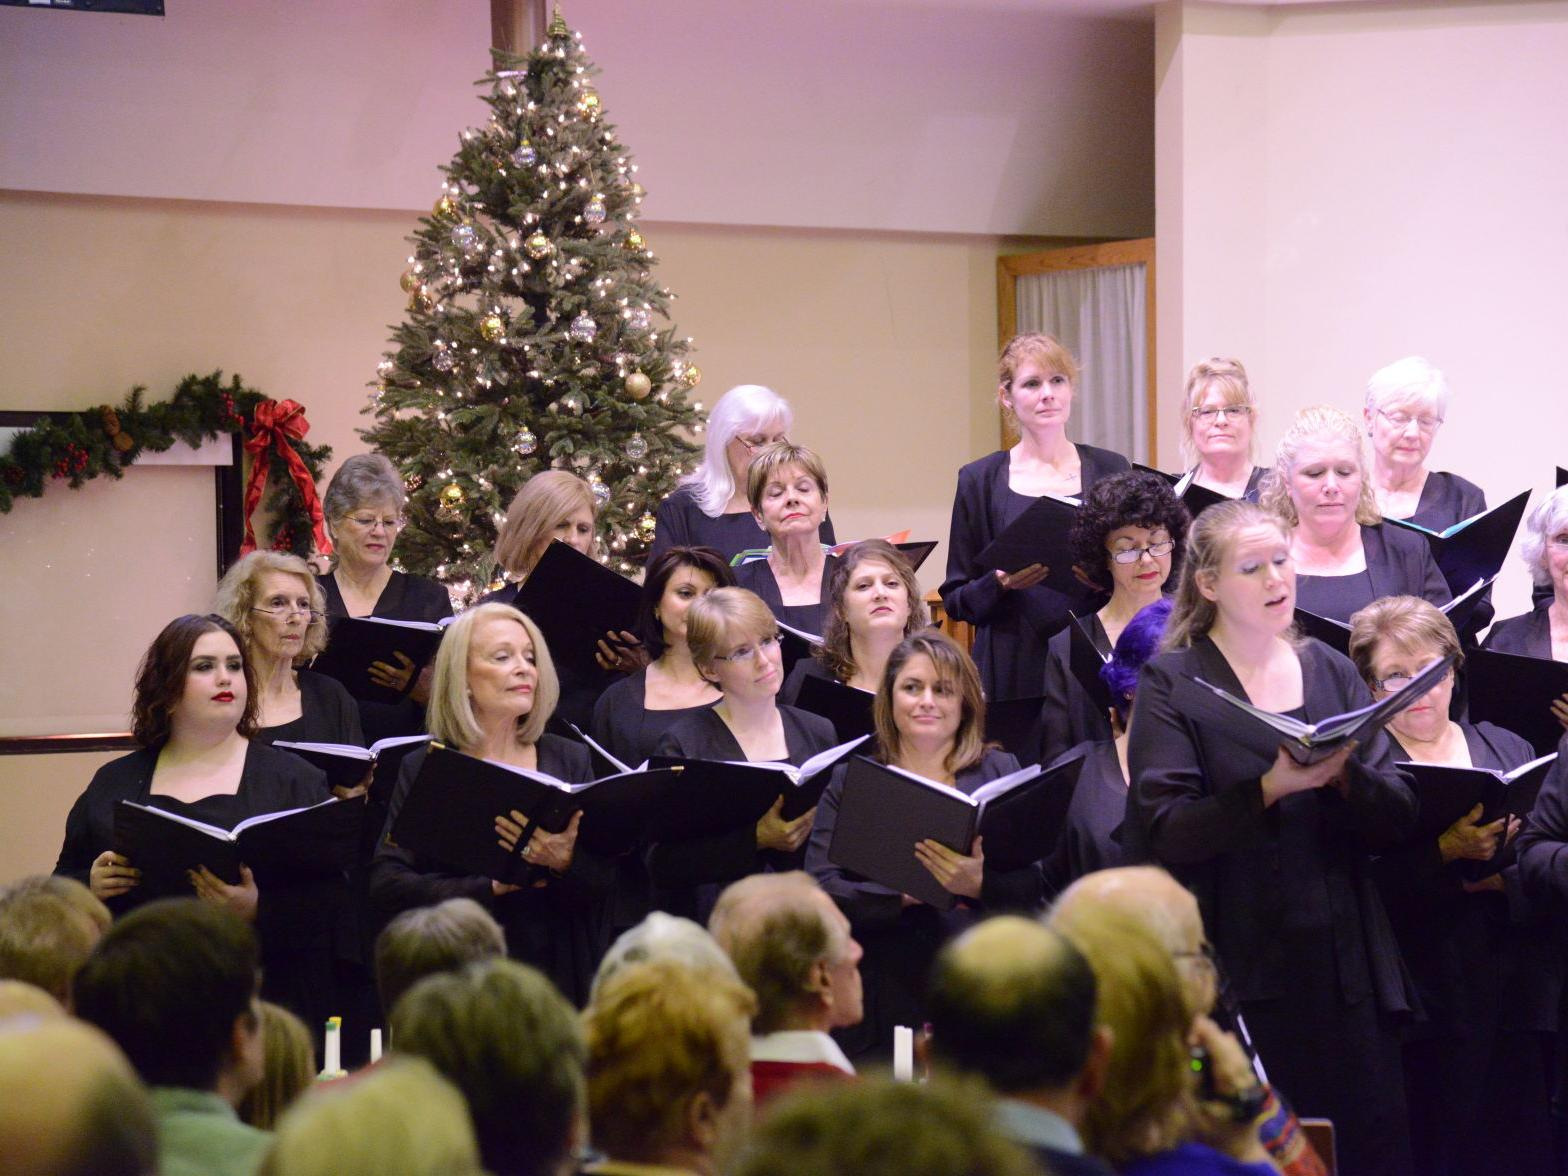 Christmas Holiday Concerts 2021 Covington La St Tammany Comes Alive With Sound And Light Throughout The Holidays St Tammany Community News Nola Com